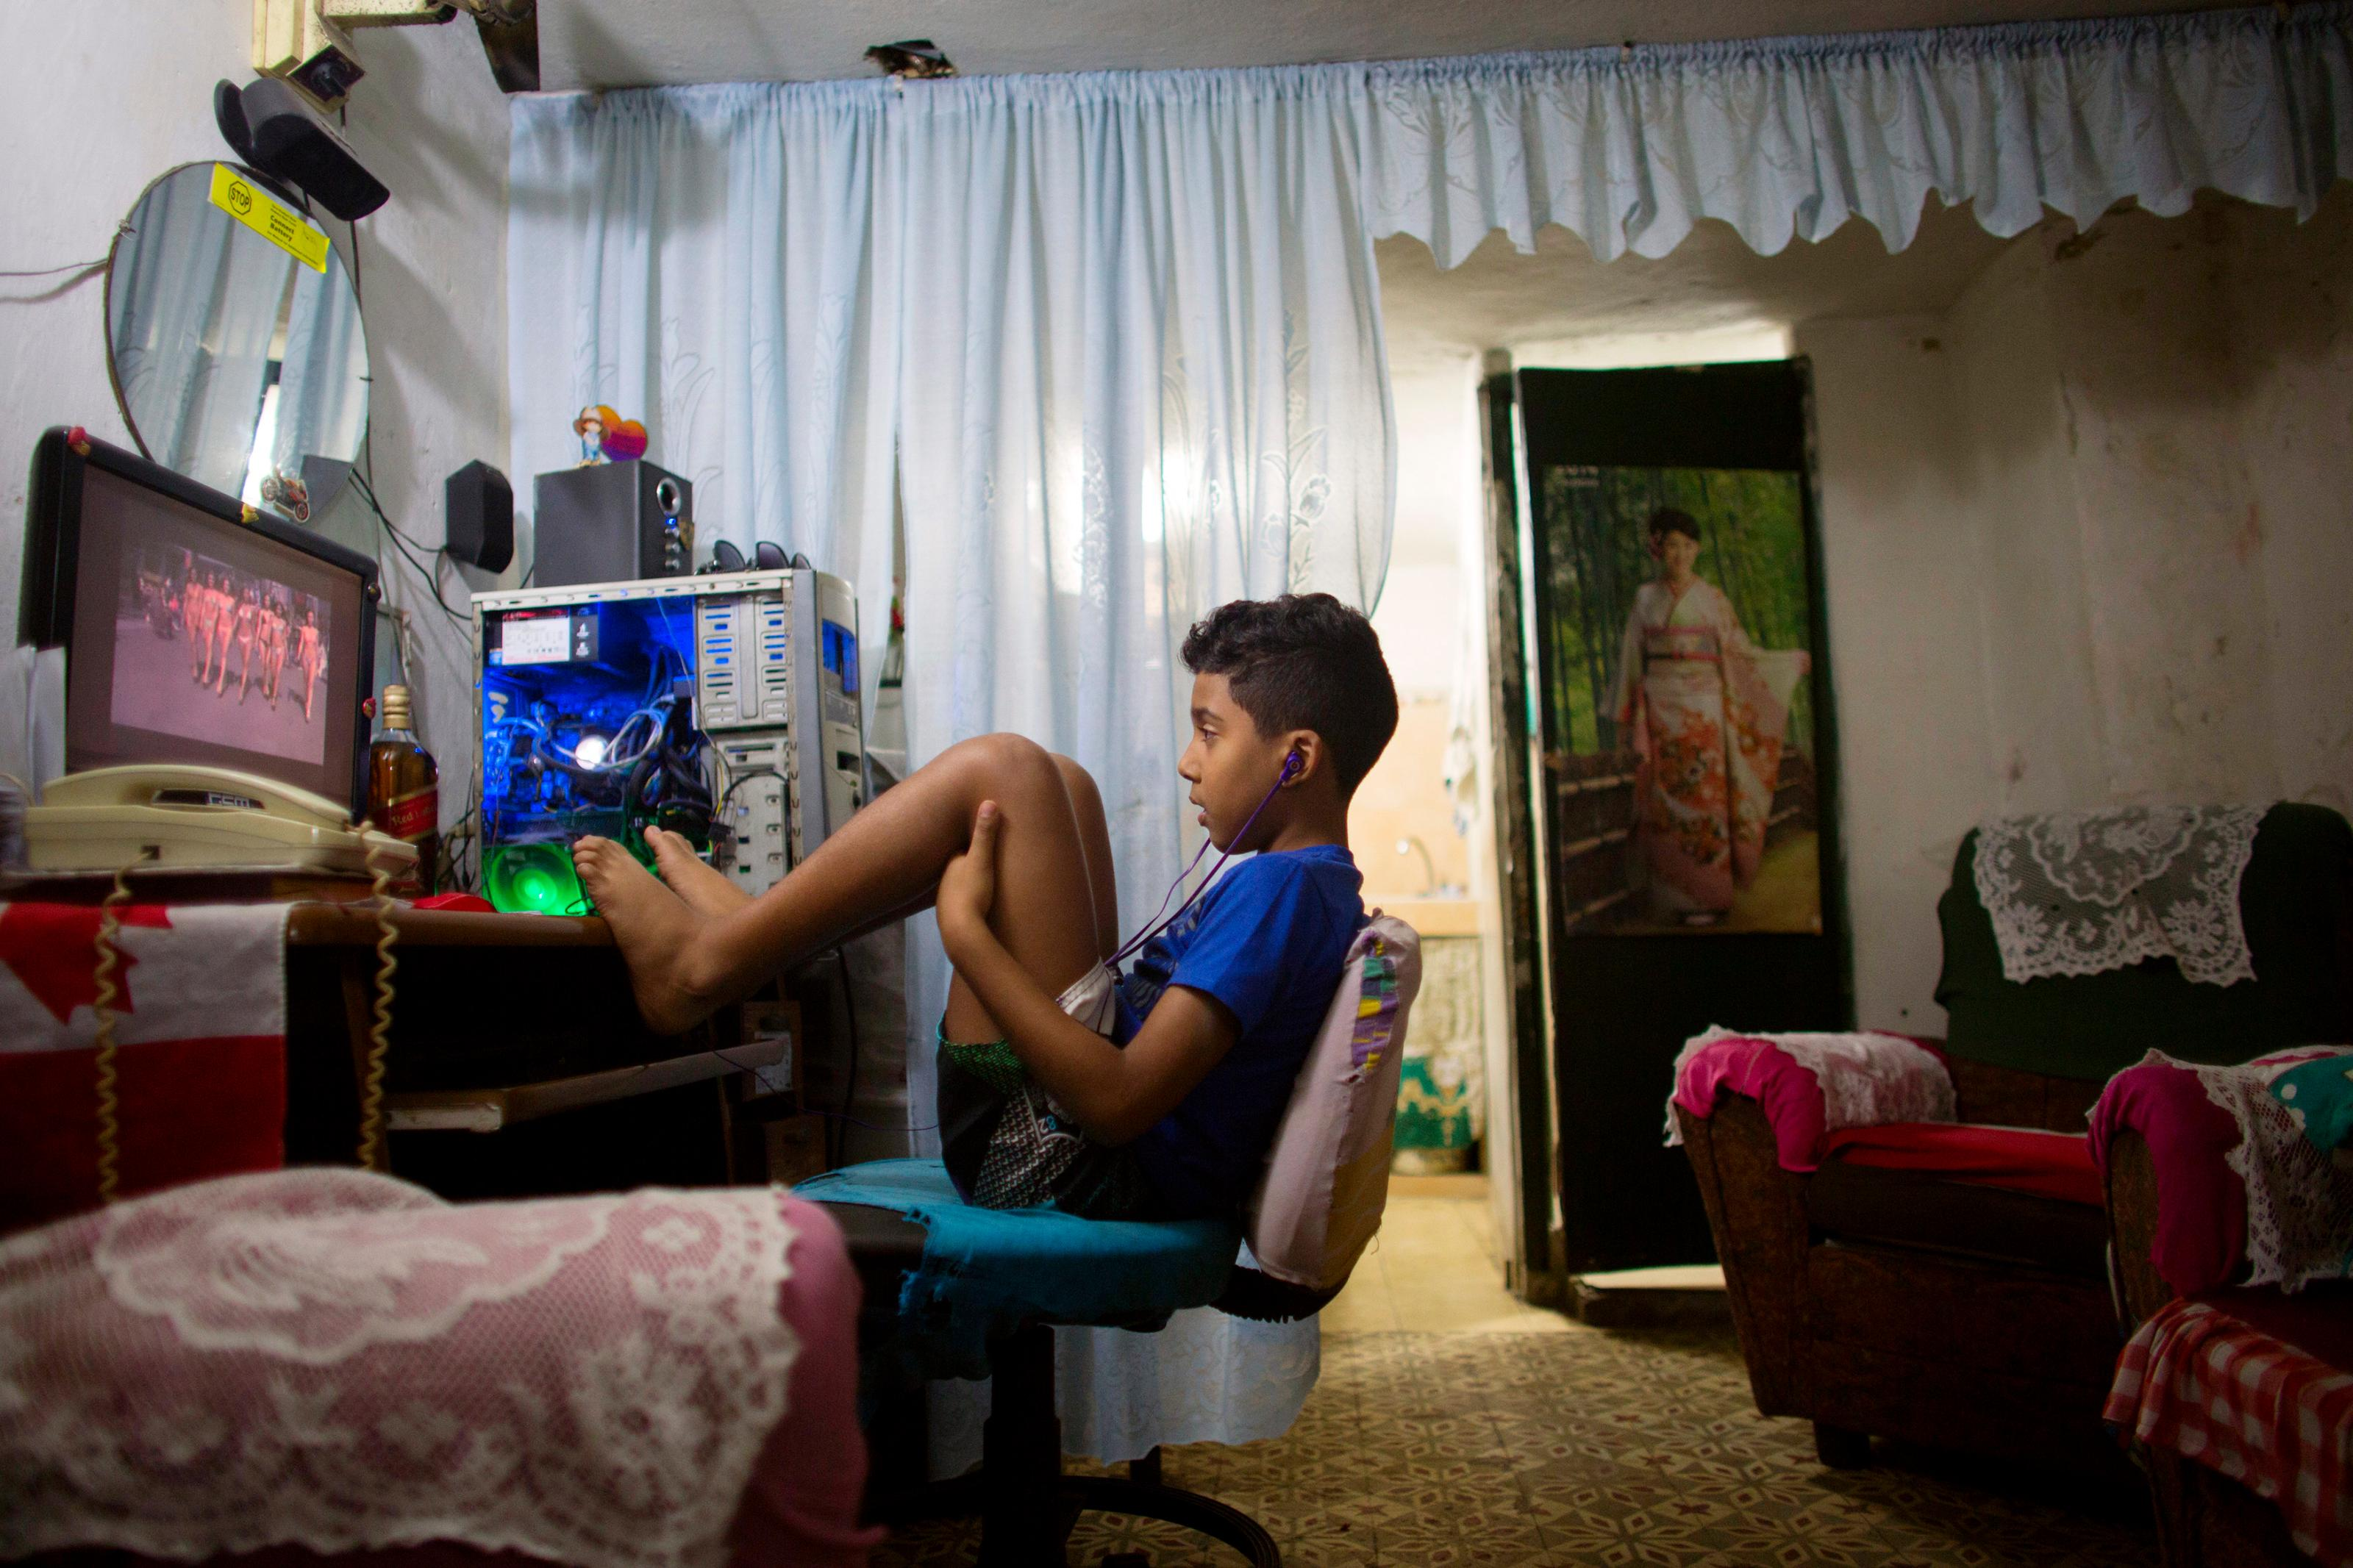 Indian parents are sending toddlers to learn computer coding